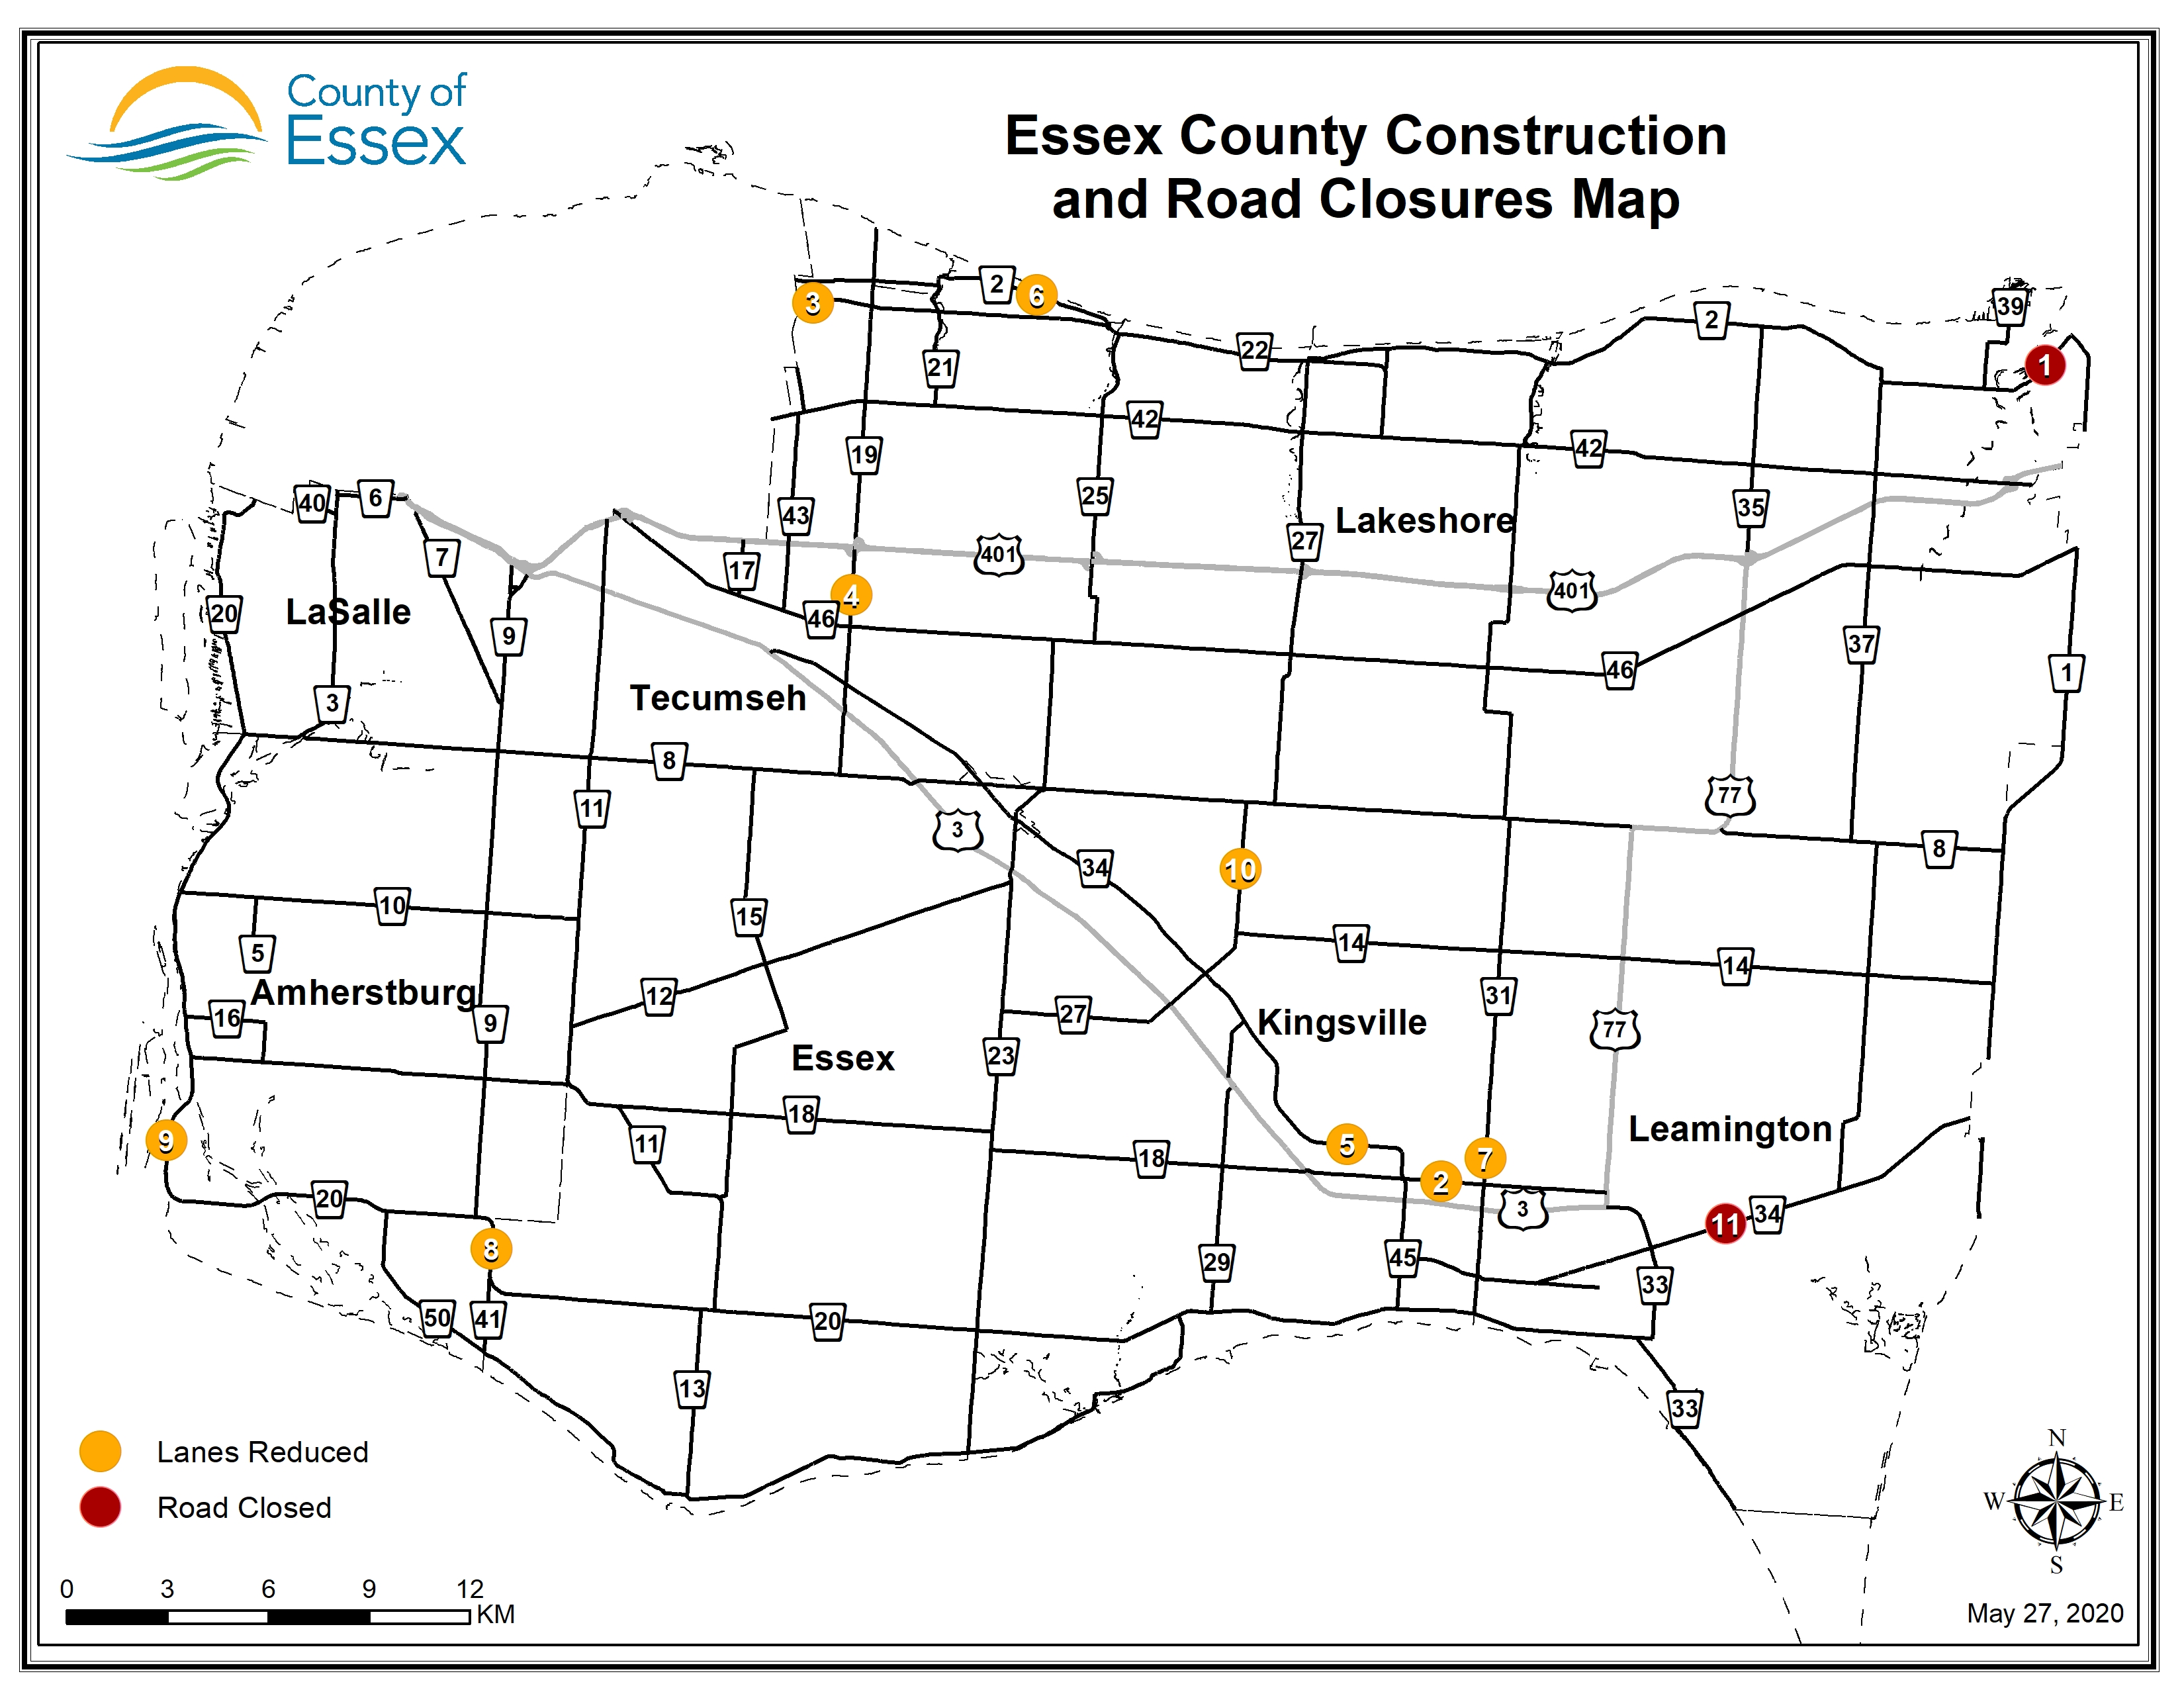 A map of Essex County showing road closures and lane restrictions for May 27, 2020.